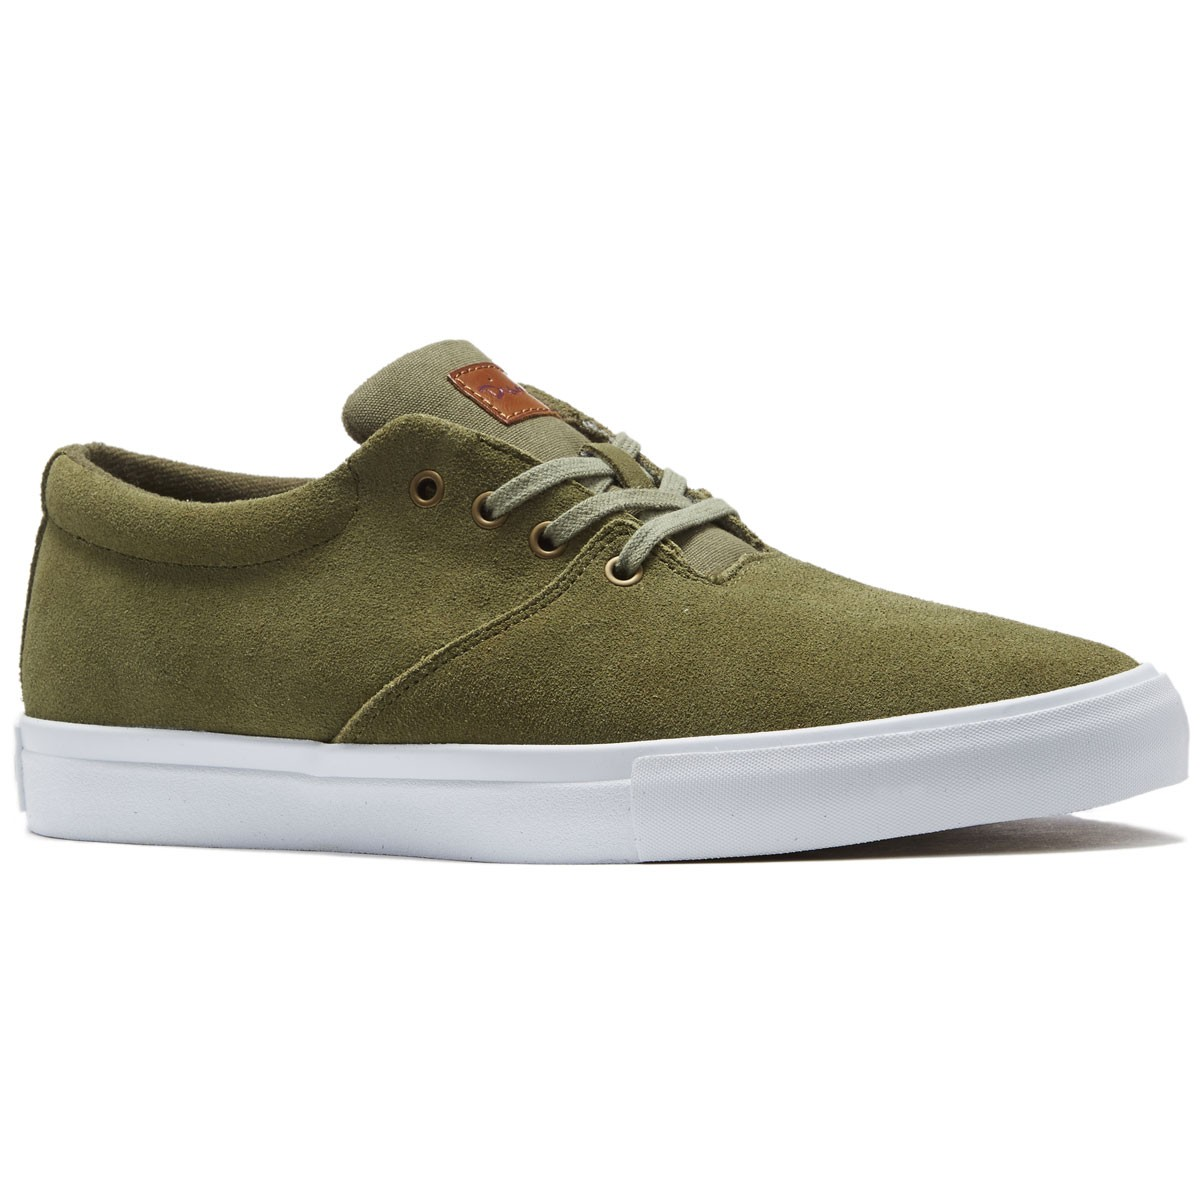 Diamond Supply Co. Torey Shoes - photo#15